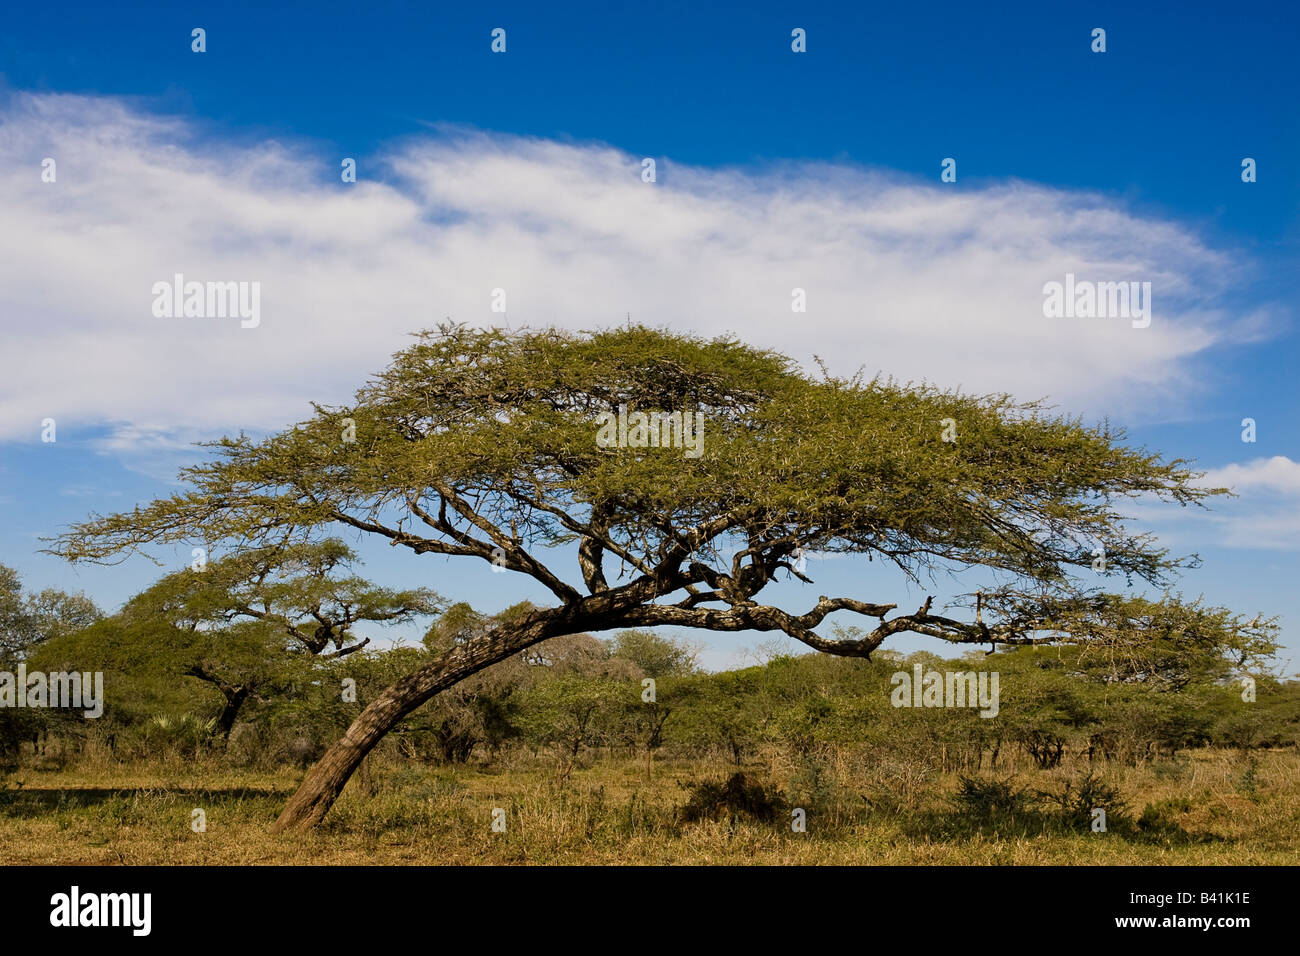 Lone Umbrella Thorn Acacia Tree Against A Beautiful Sky The Shot Was